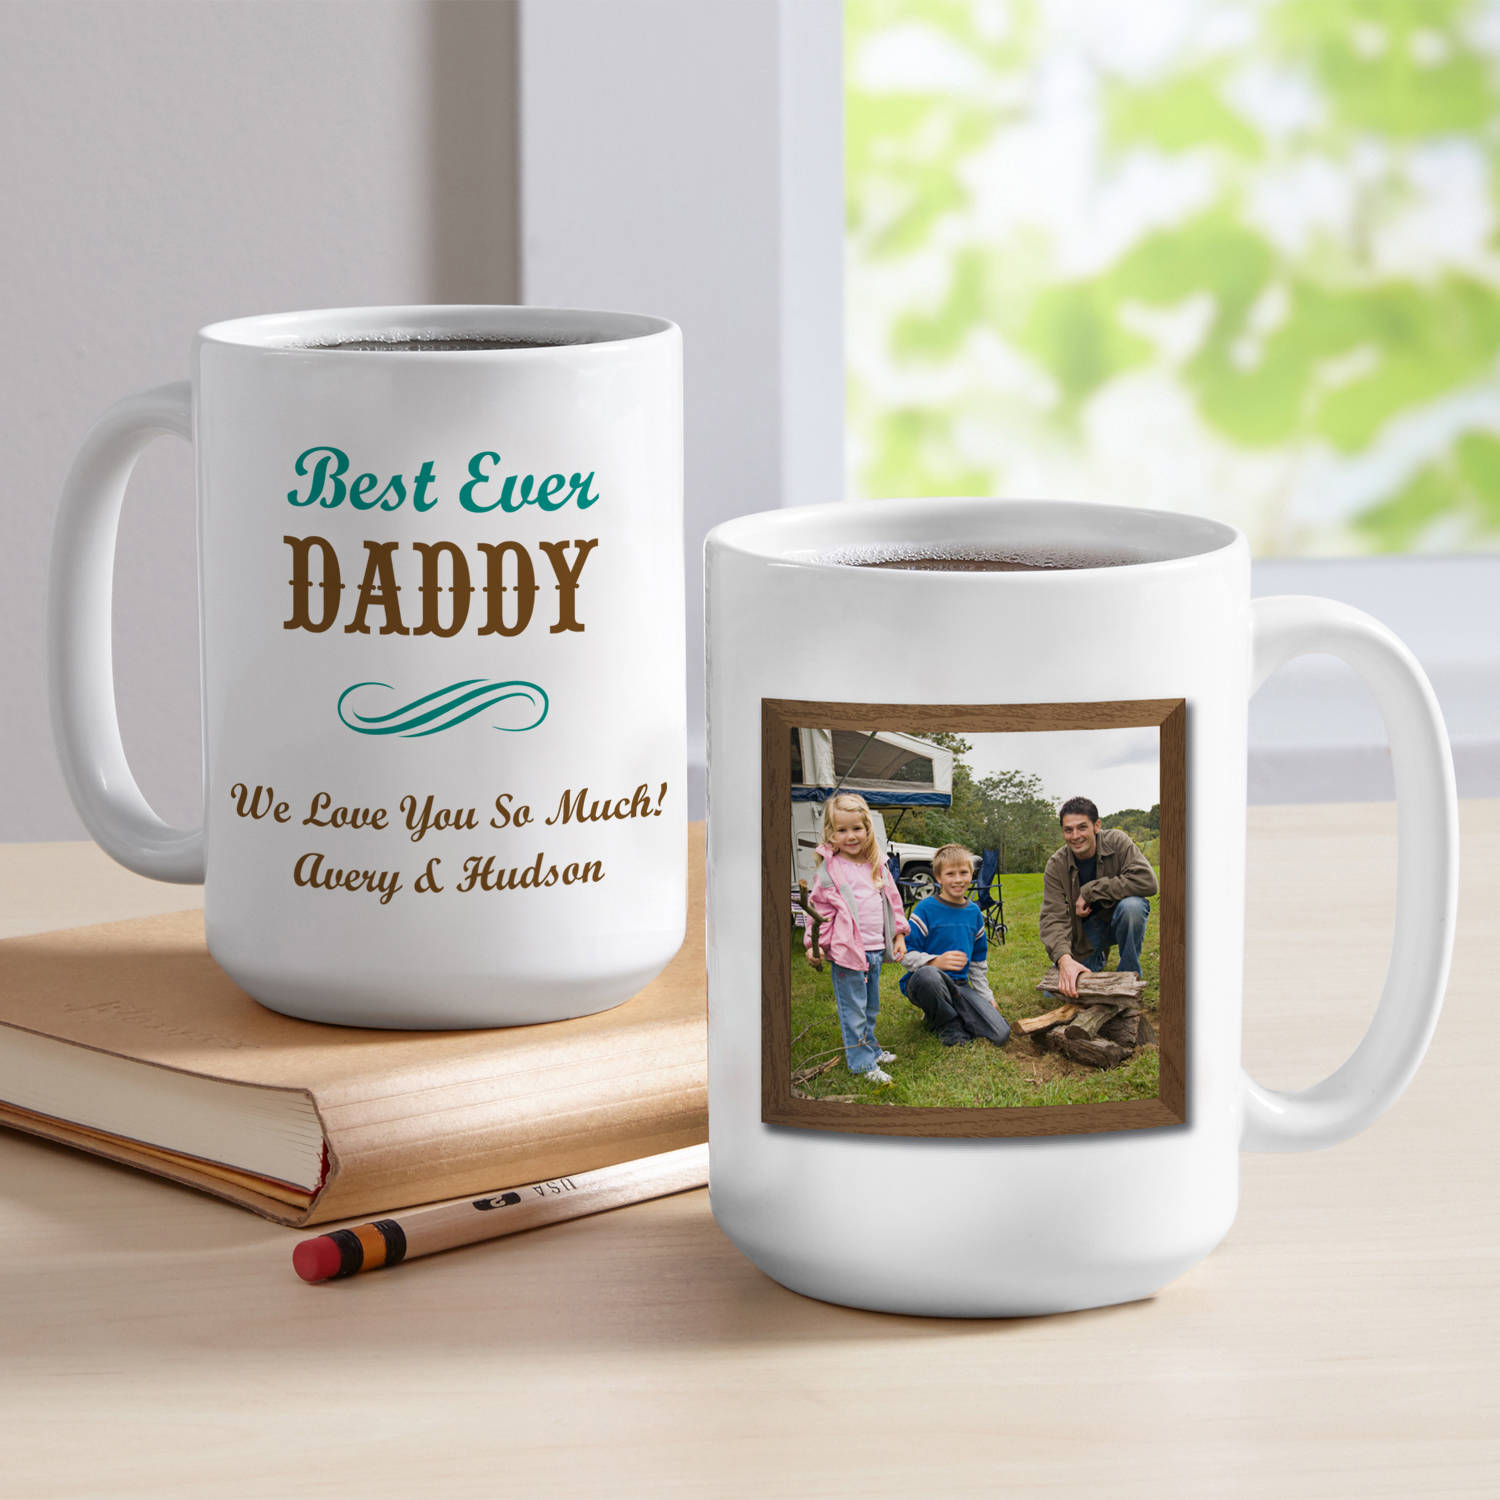 Personalized Best Ever Photo Coffee Mug, 15 oz- Brown, Available in ...